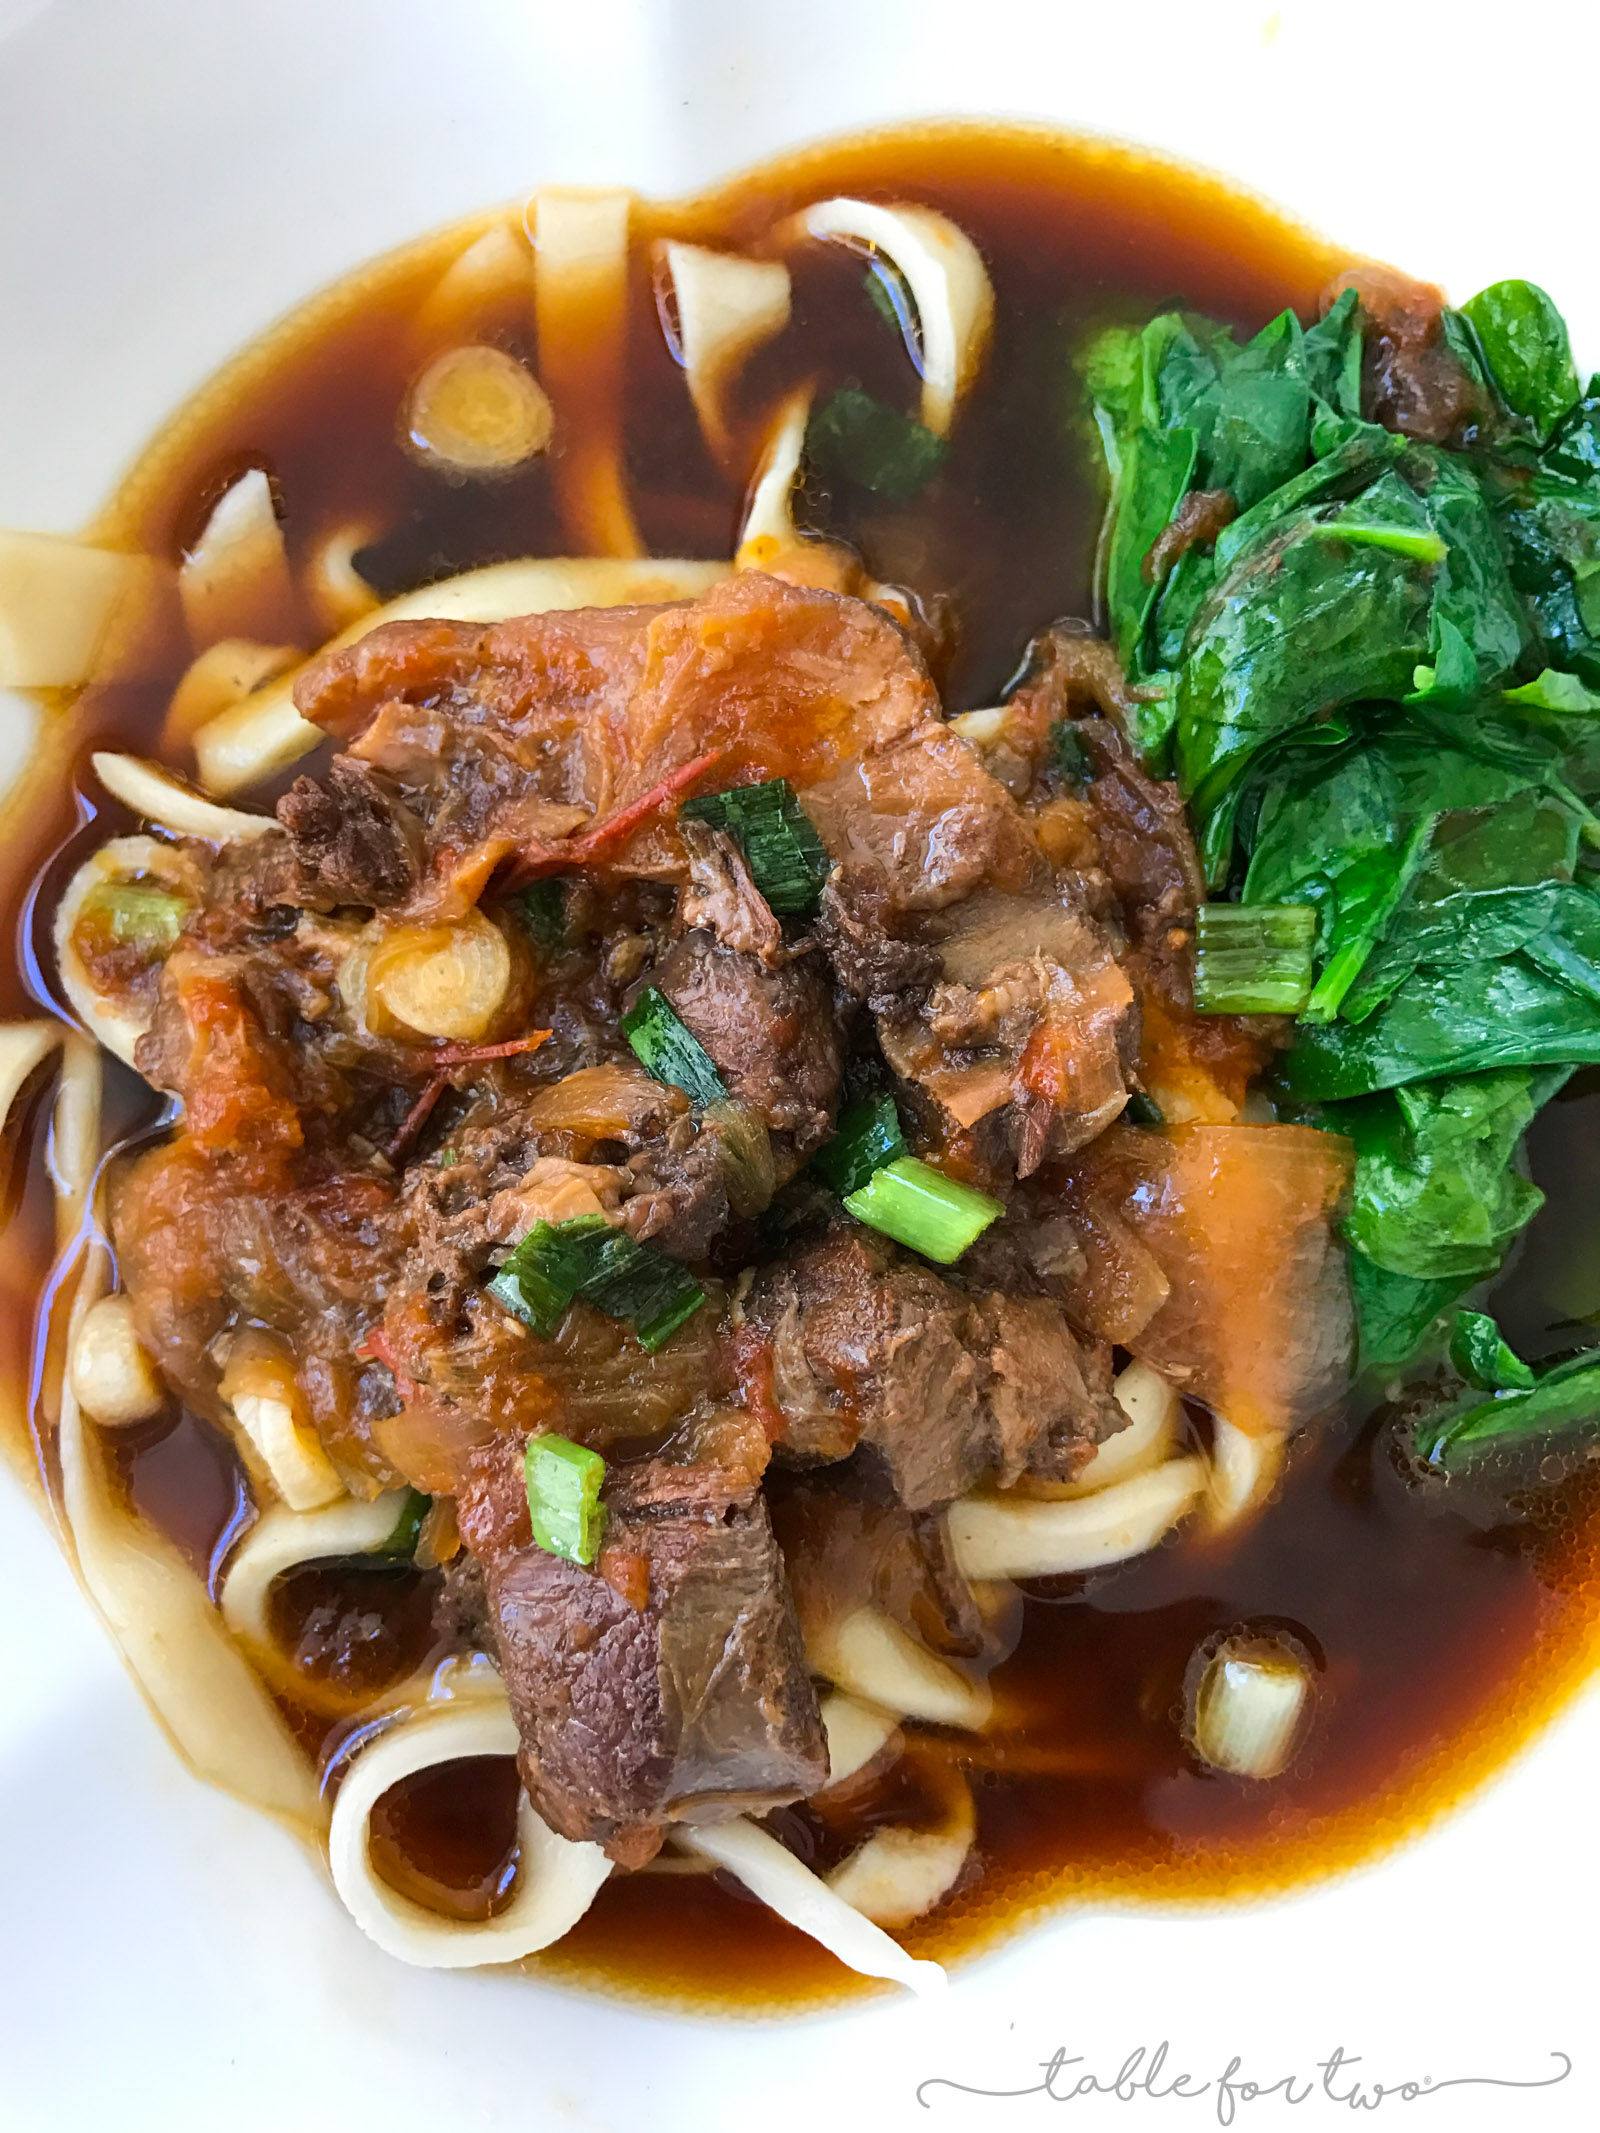 Using your Instant Pot or pressure cooker, you can make this deliciously flavorful, tender, and cozy Taiwanese beef noodle soup right at home!